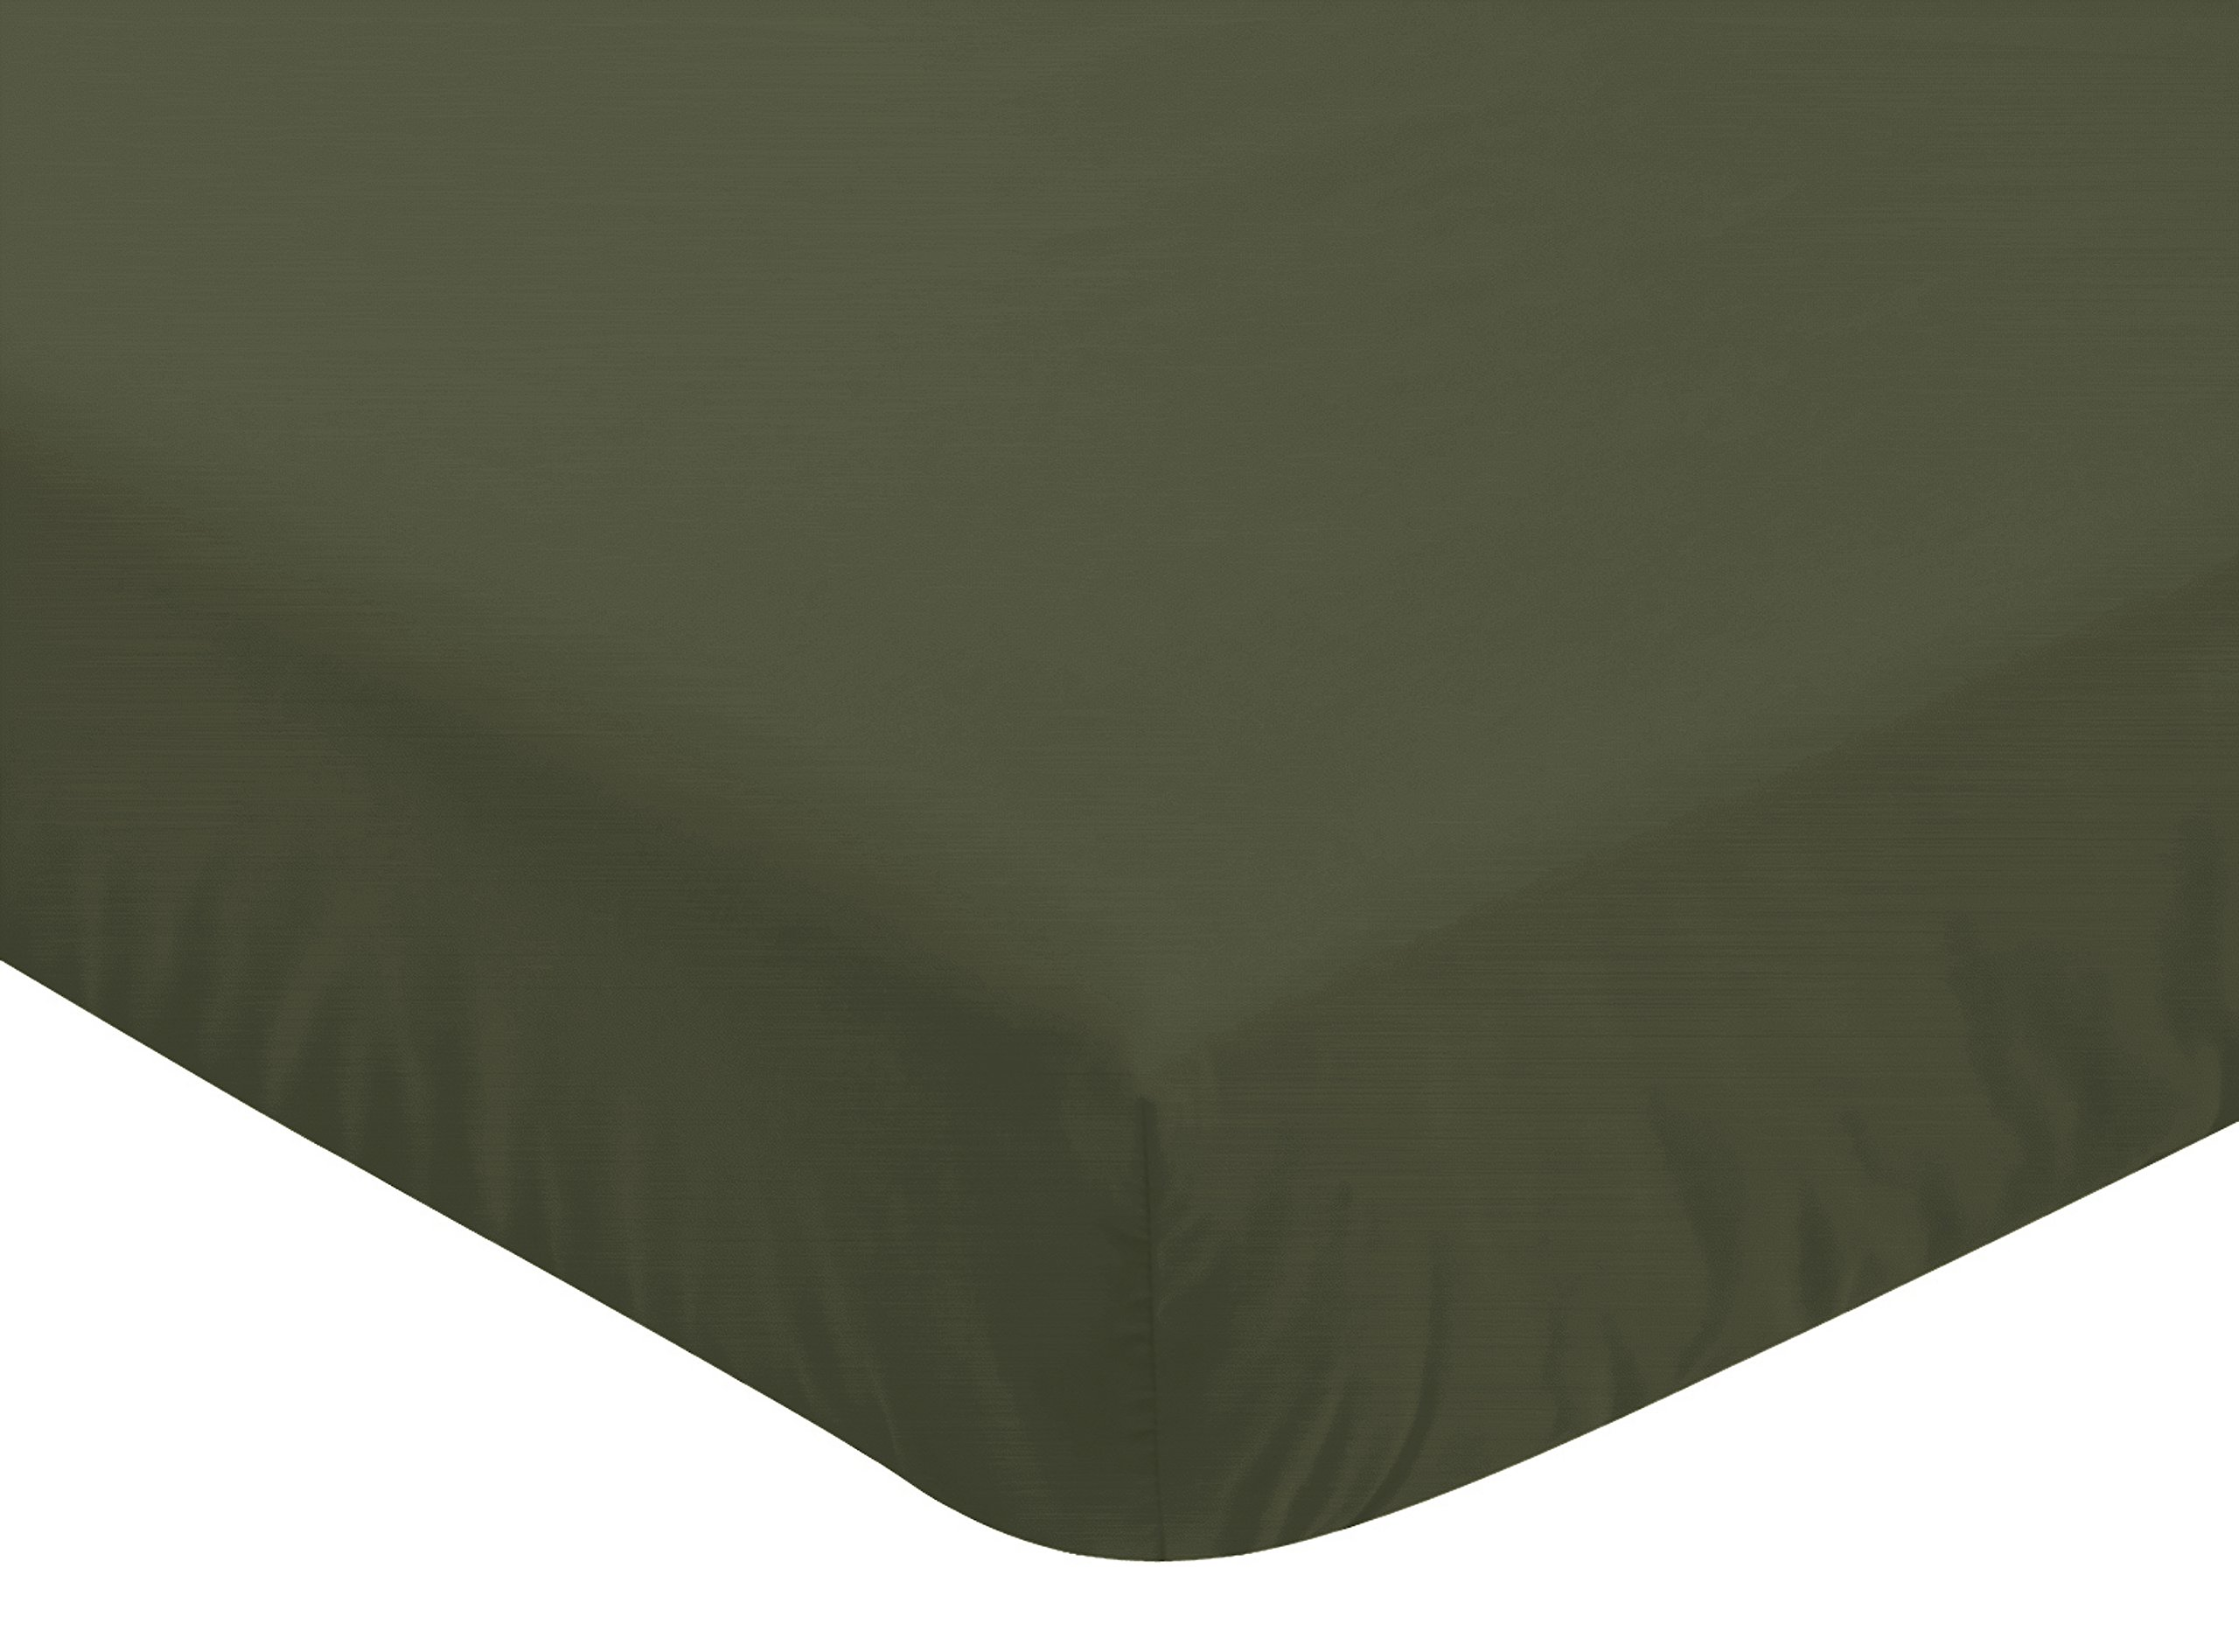 Sweet JoJo Designs Solid Dark Green Baby or Toddler Fitted Crib Sheet for Woodland Camo Collection by Sweet Jojo Designs (Image #1)